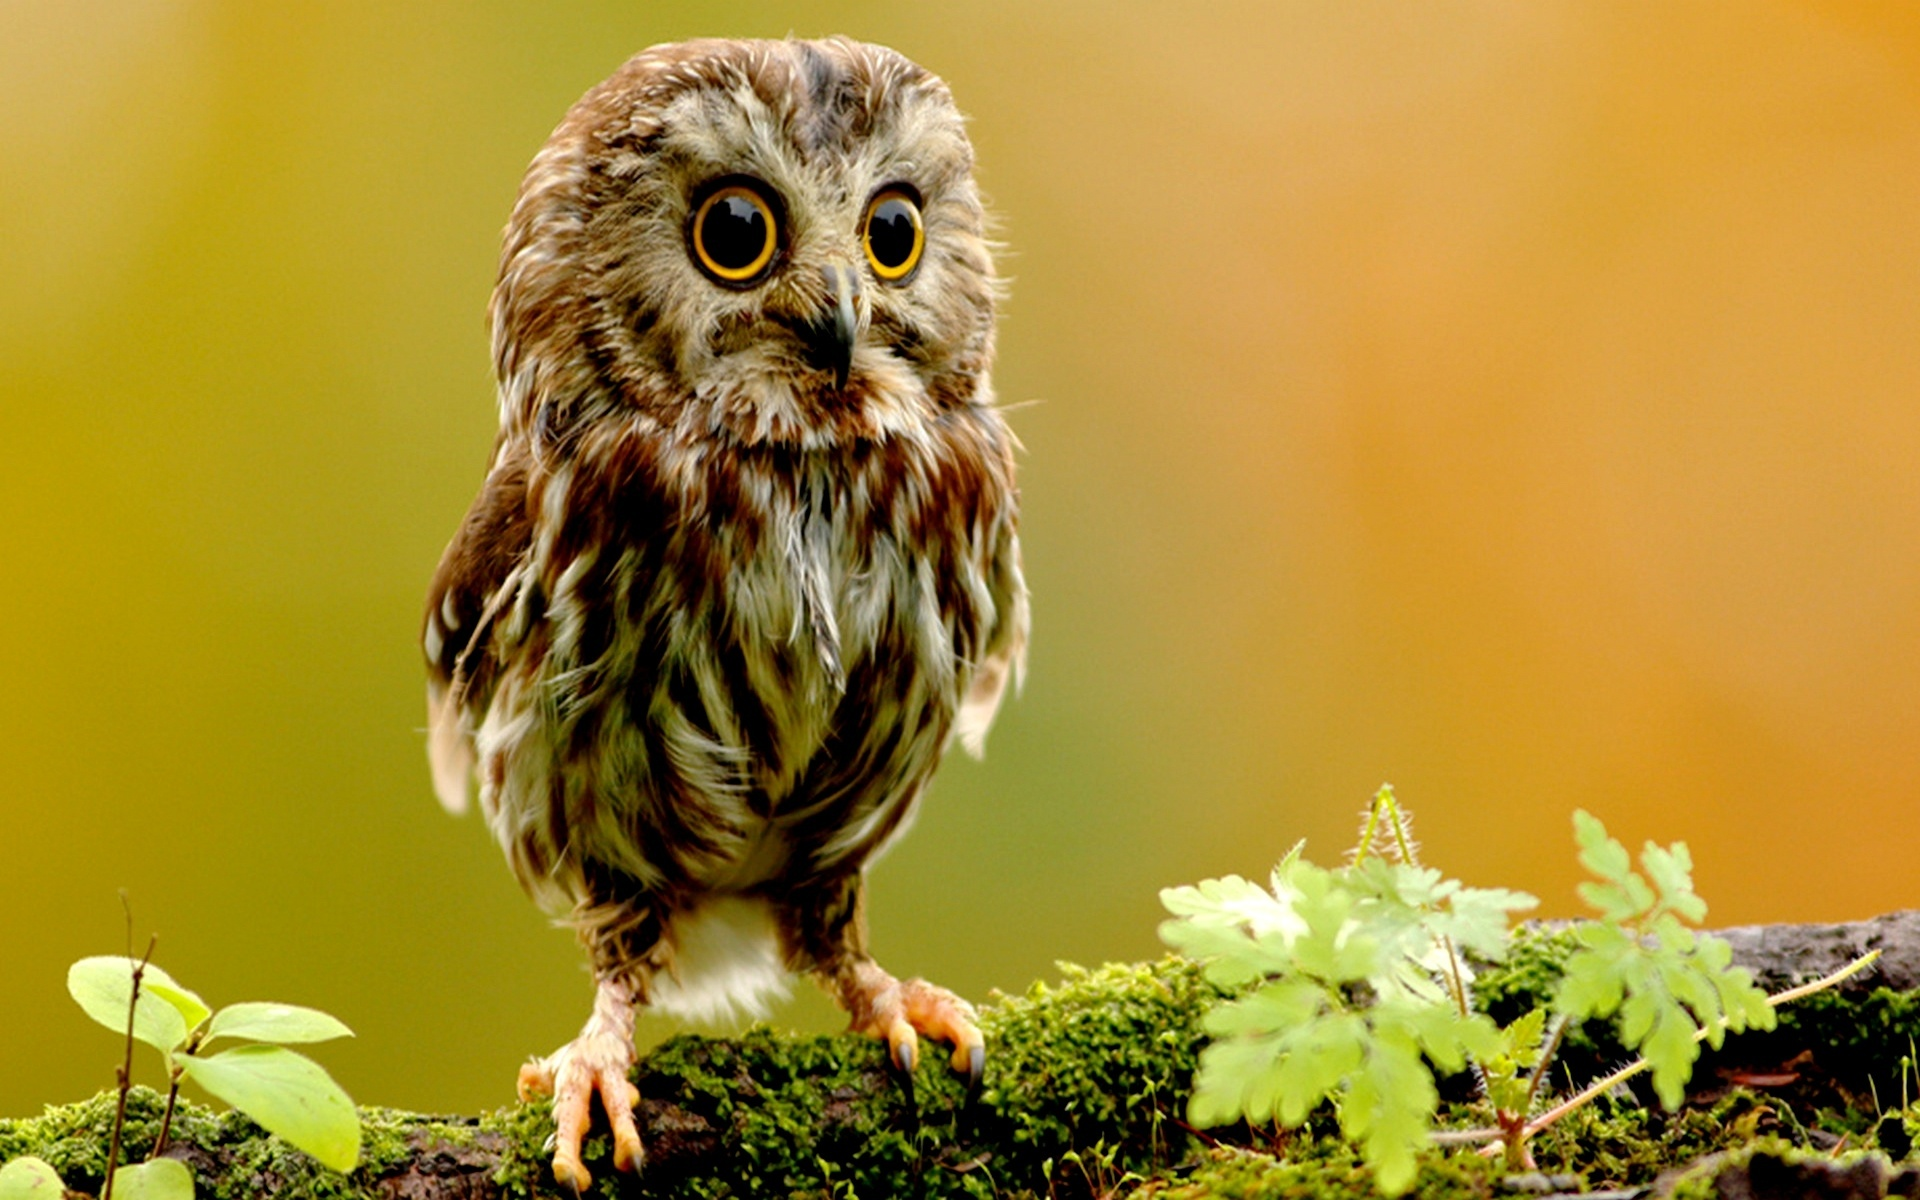 cute owl wallpapers - HD Desktop Wallpapers 4k HD